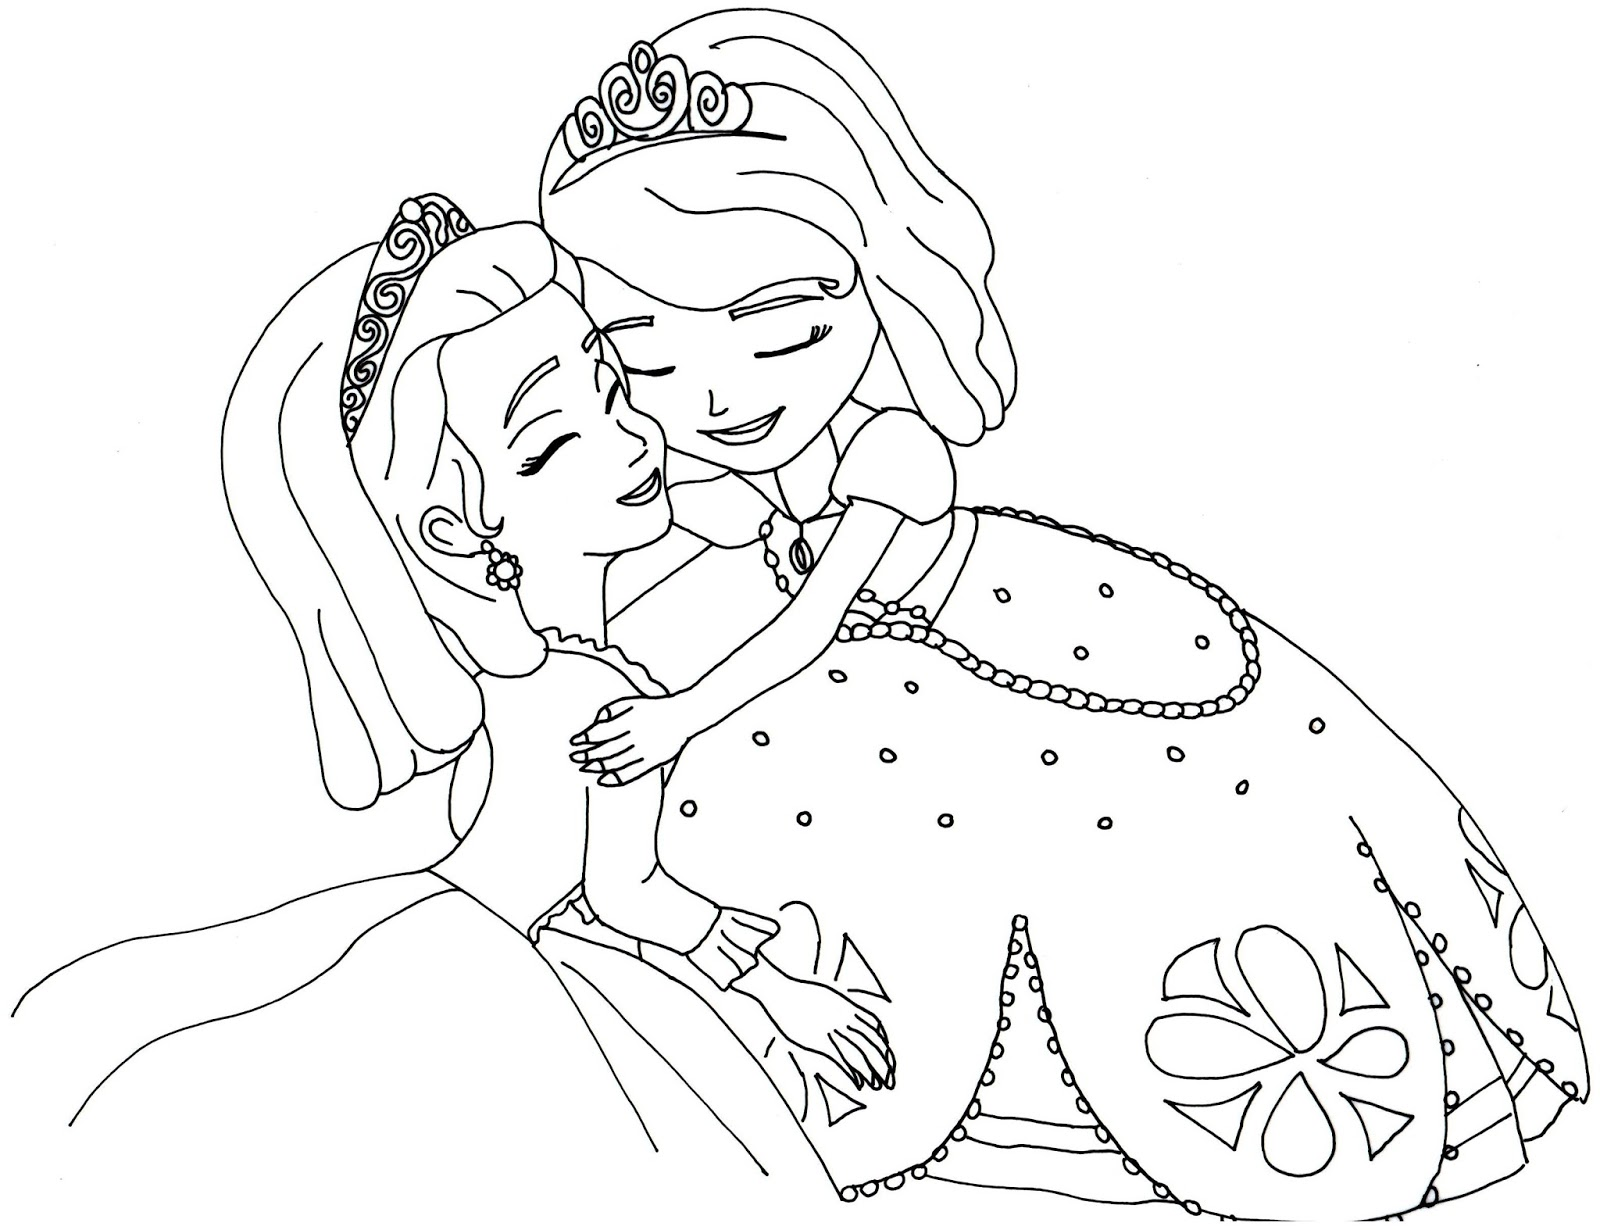 Sofia The First Coloring Pages December 2015 The Coloring Pages